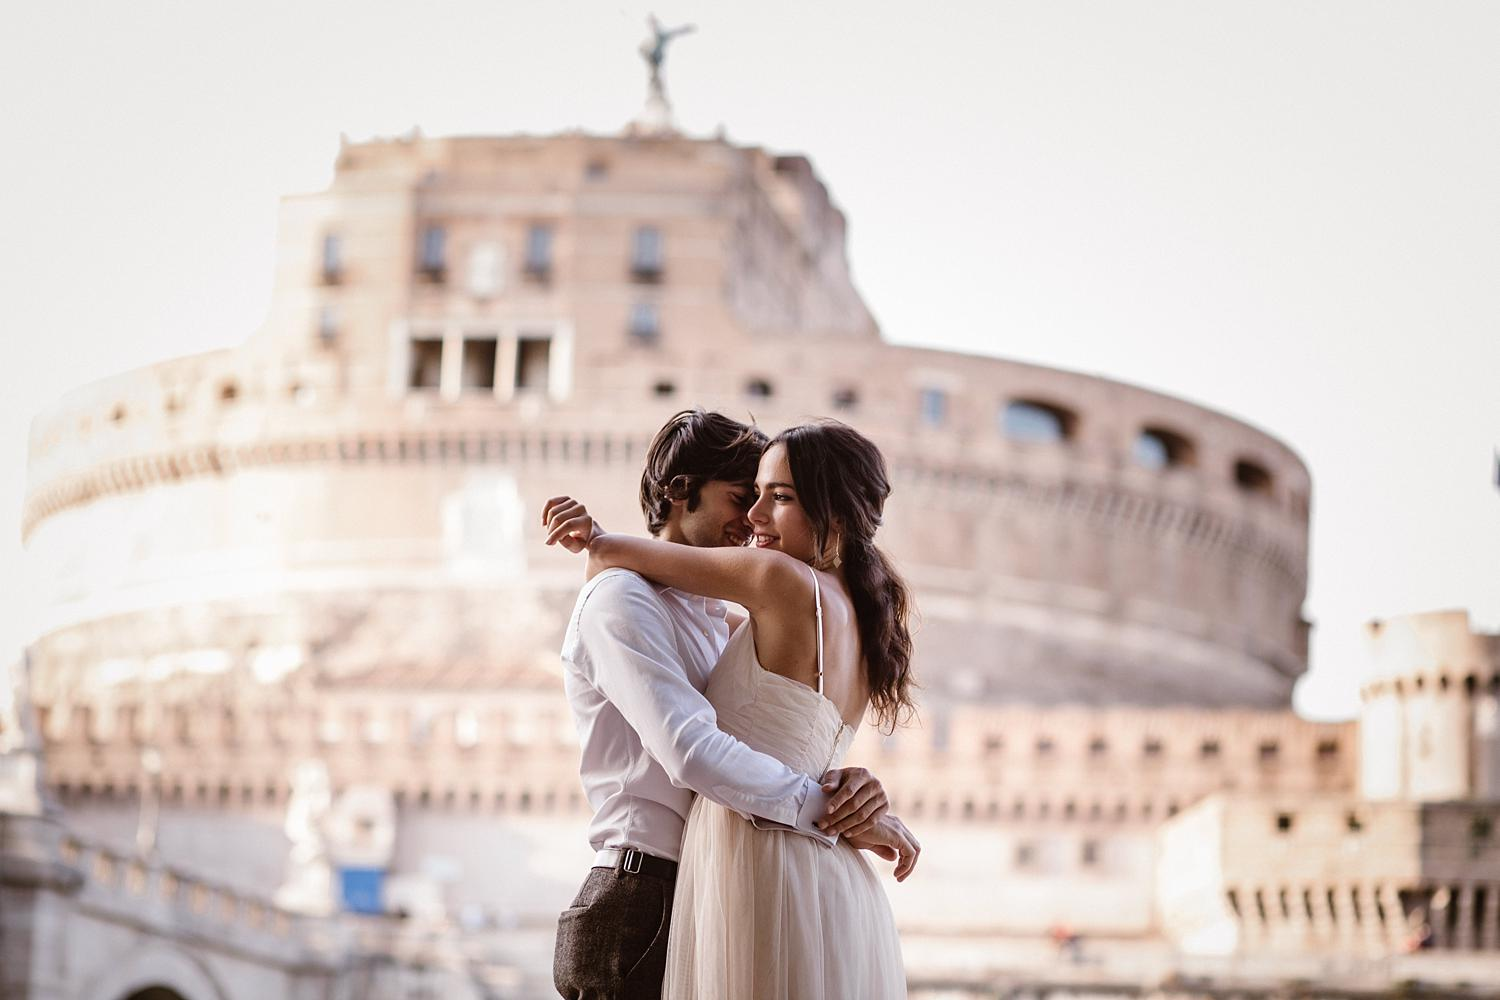 gs weddingphotographer rome 48 - Giulia & Simone - Elegant Couple Shooting in Rome